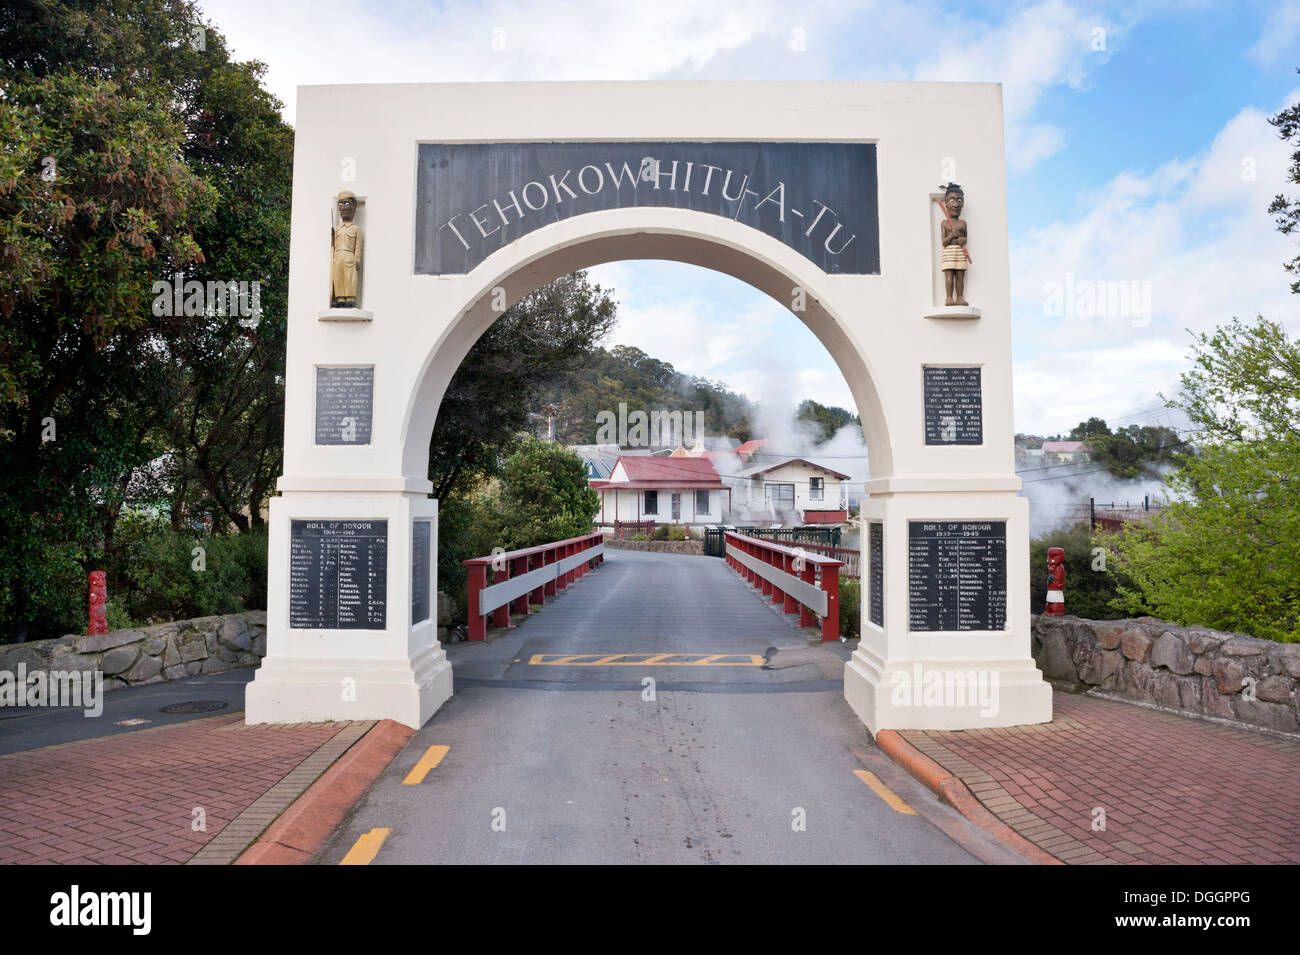 Memorial archway entrance to the Whakarewarewa Maori thermal village, Rotorua, North Island, New Zealand. Commemorates fallen soldiers. - Stock Image